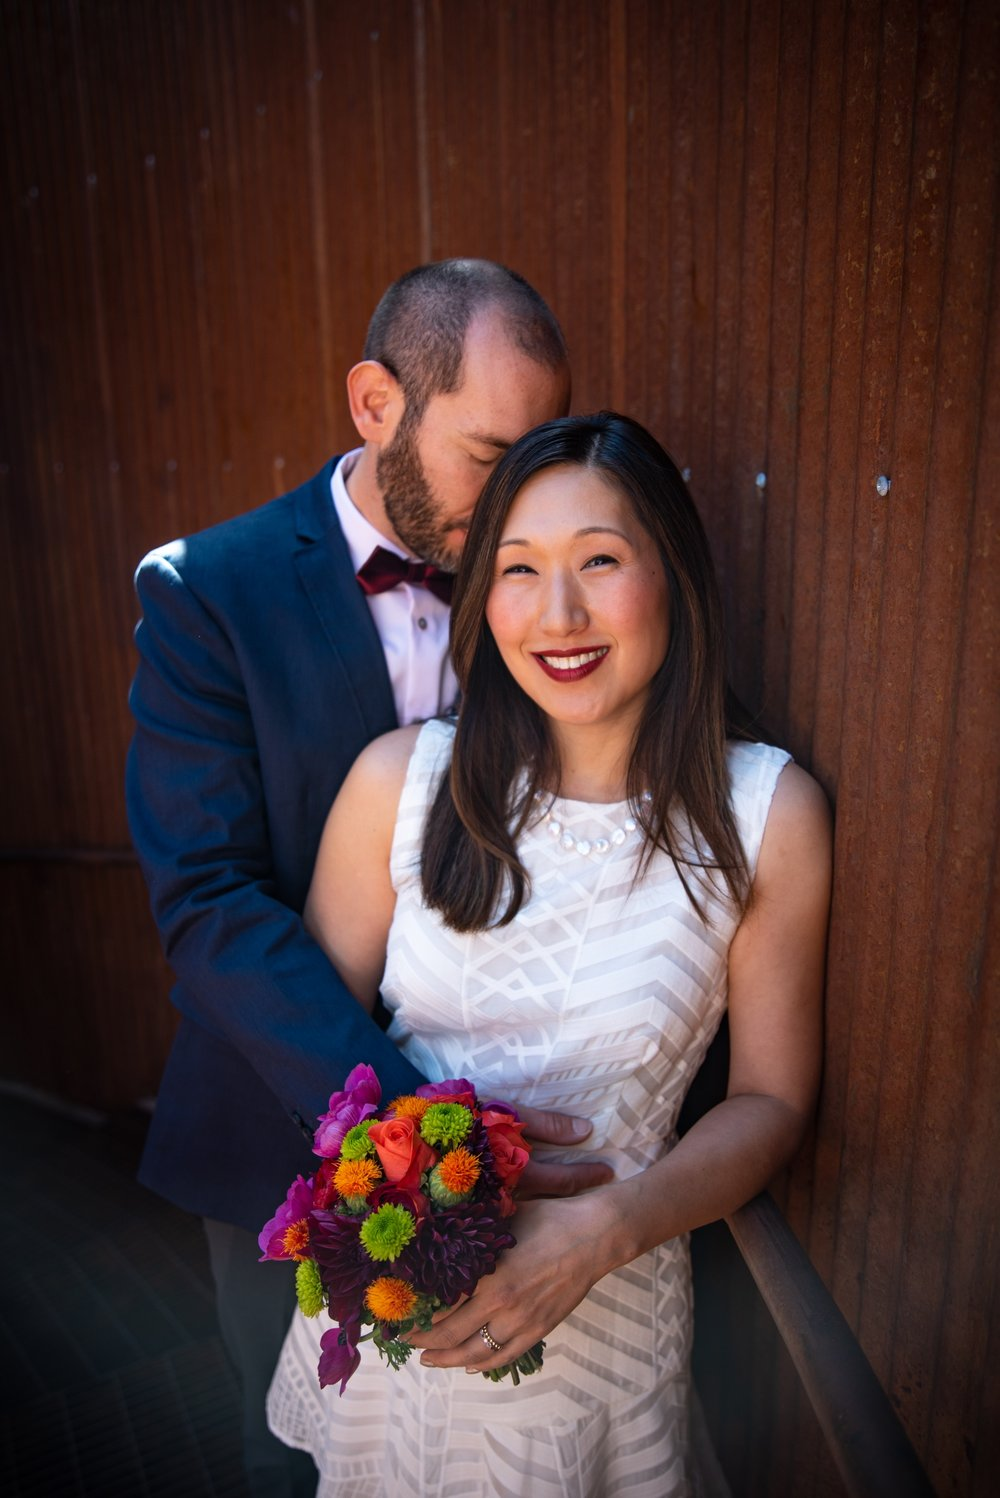 Elopement or Small Wedding Photography // Monika B. Leopold Photography // Durango, Colorado